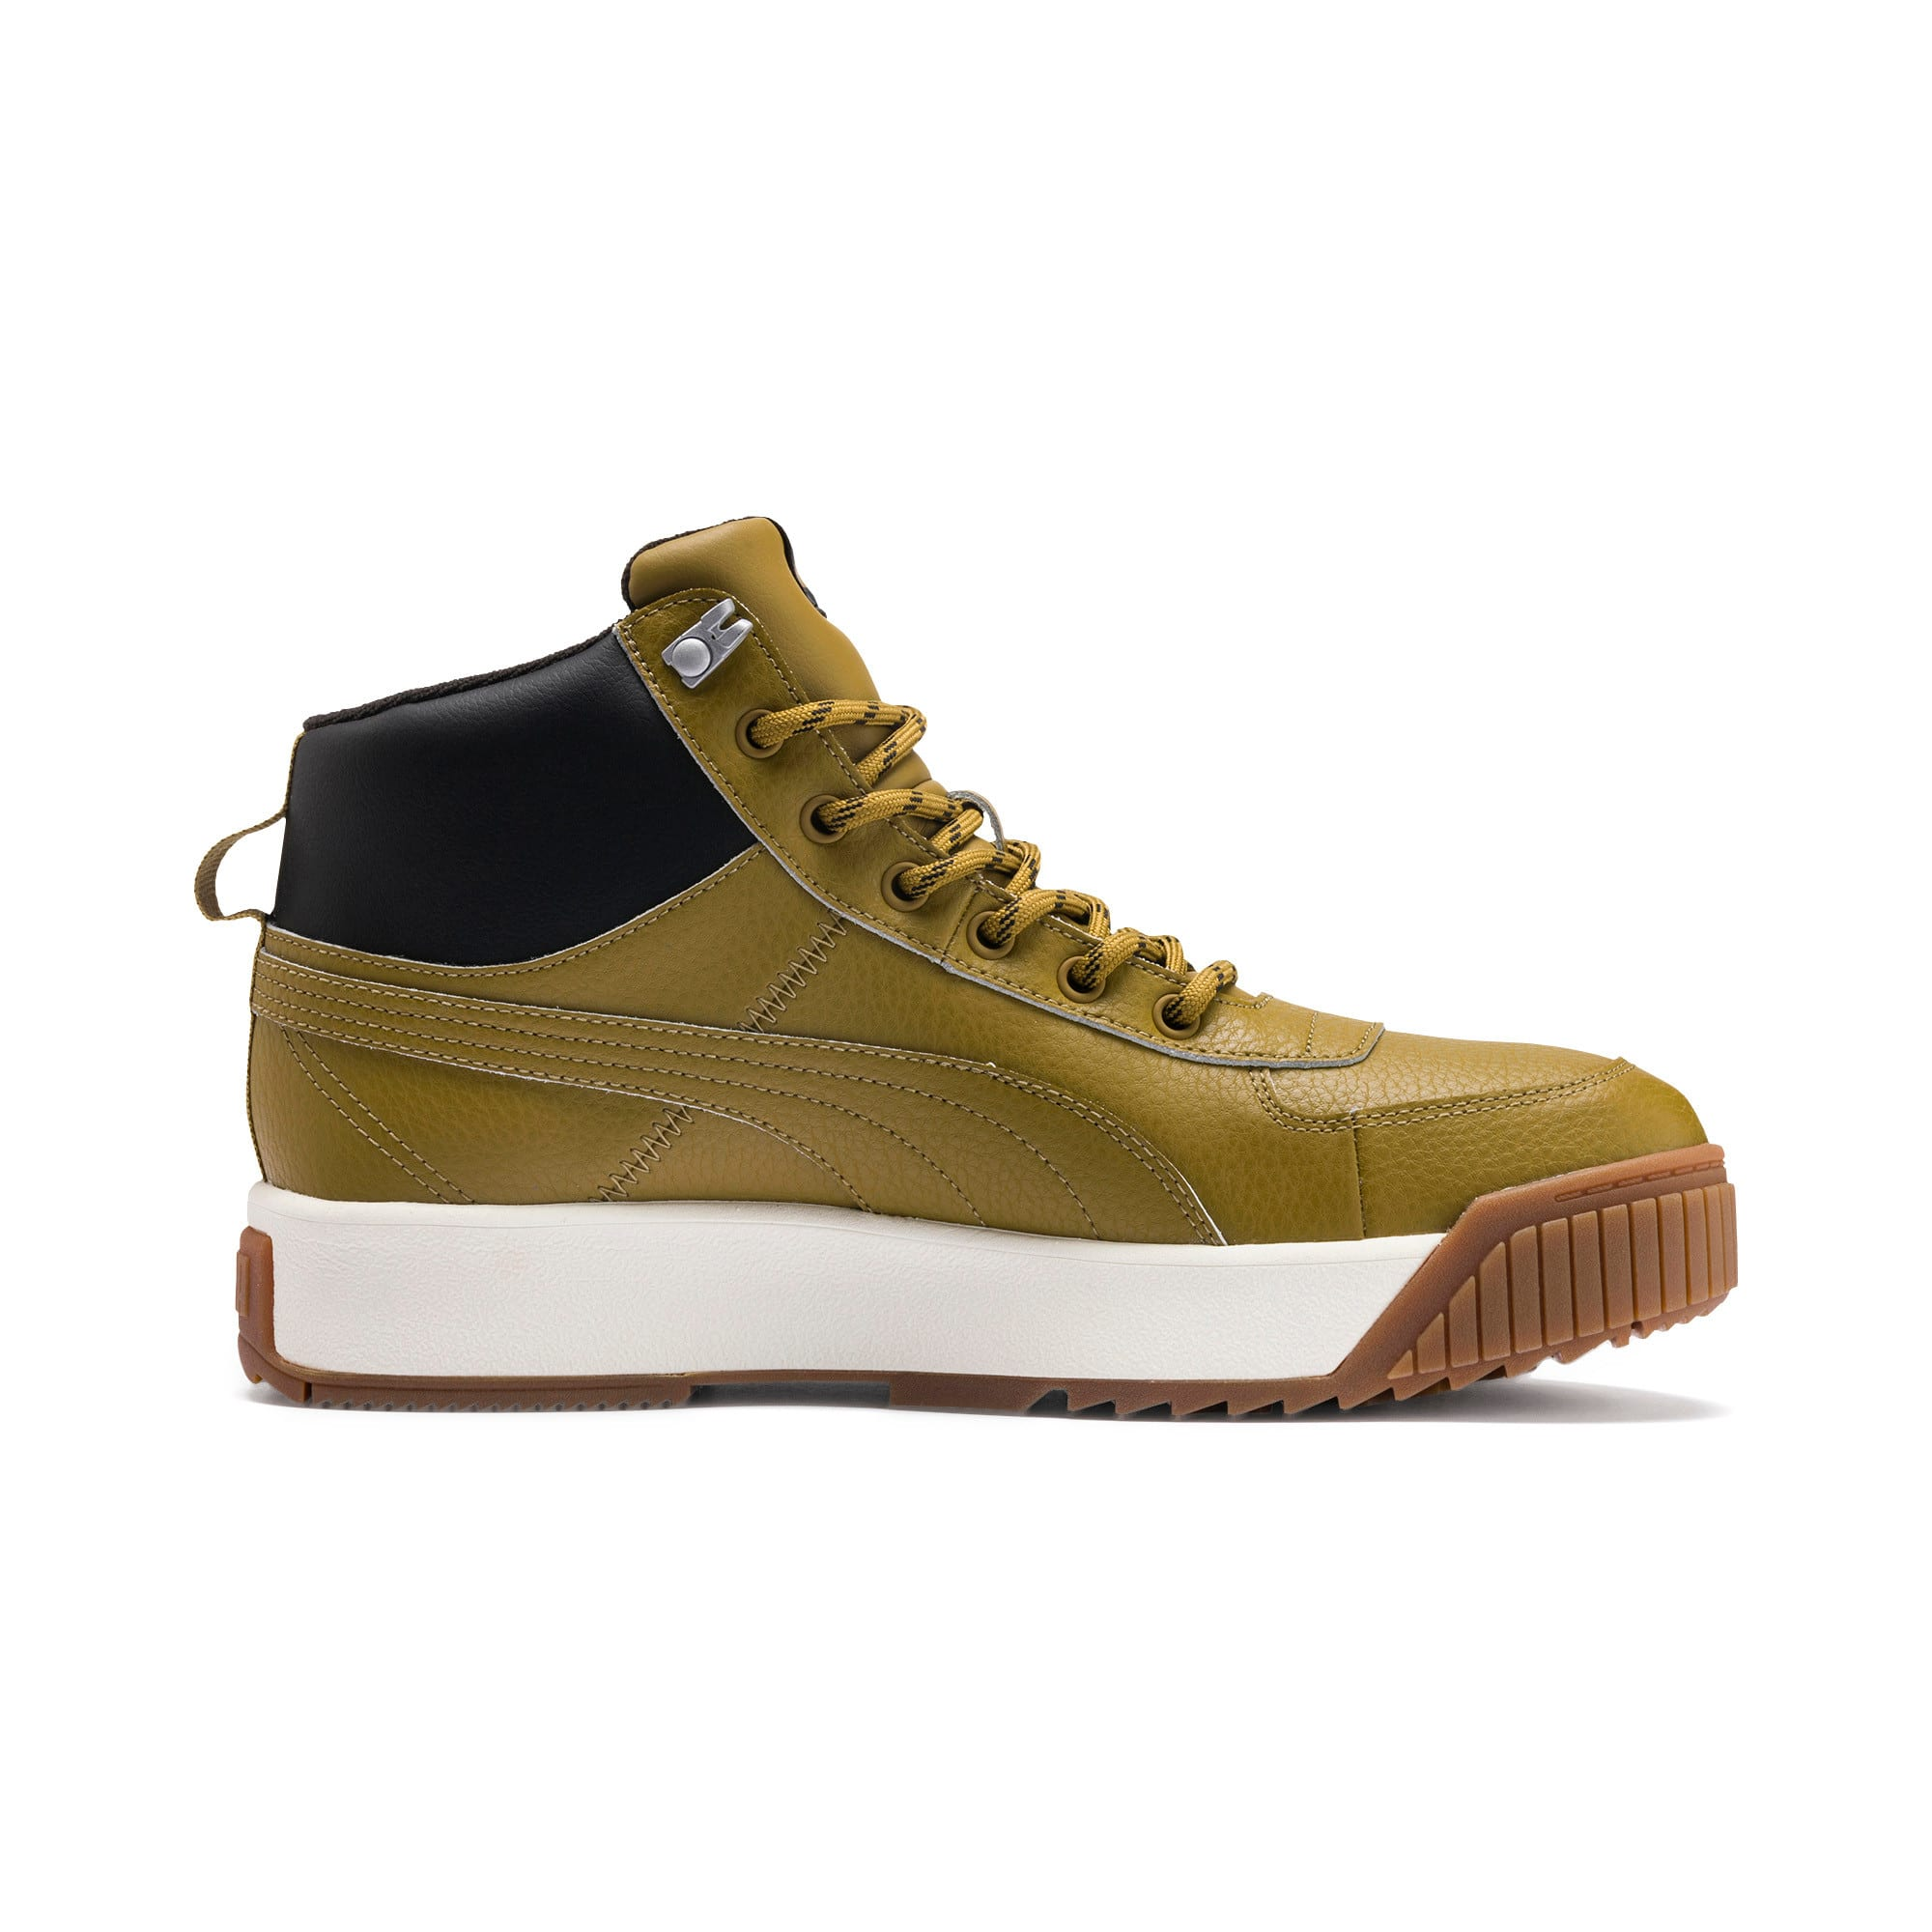 Thumbnail 6 of Tarrenz SB PURE-TEX sportschoenen, Moss Green-Puma Black, medium